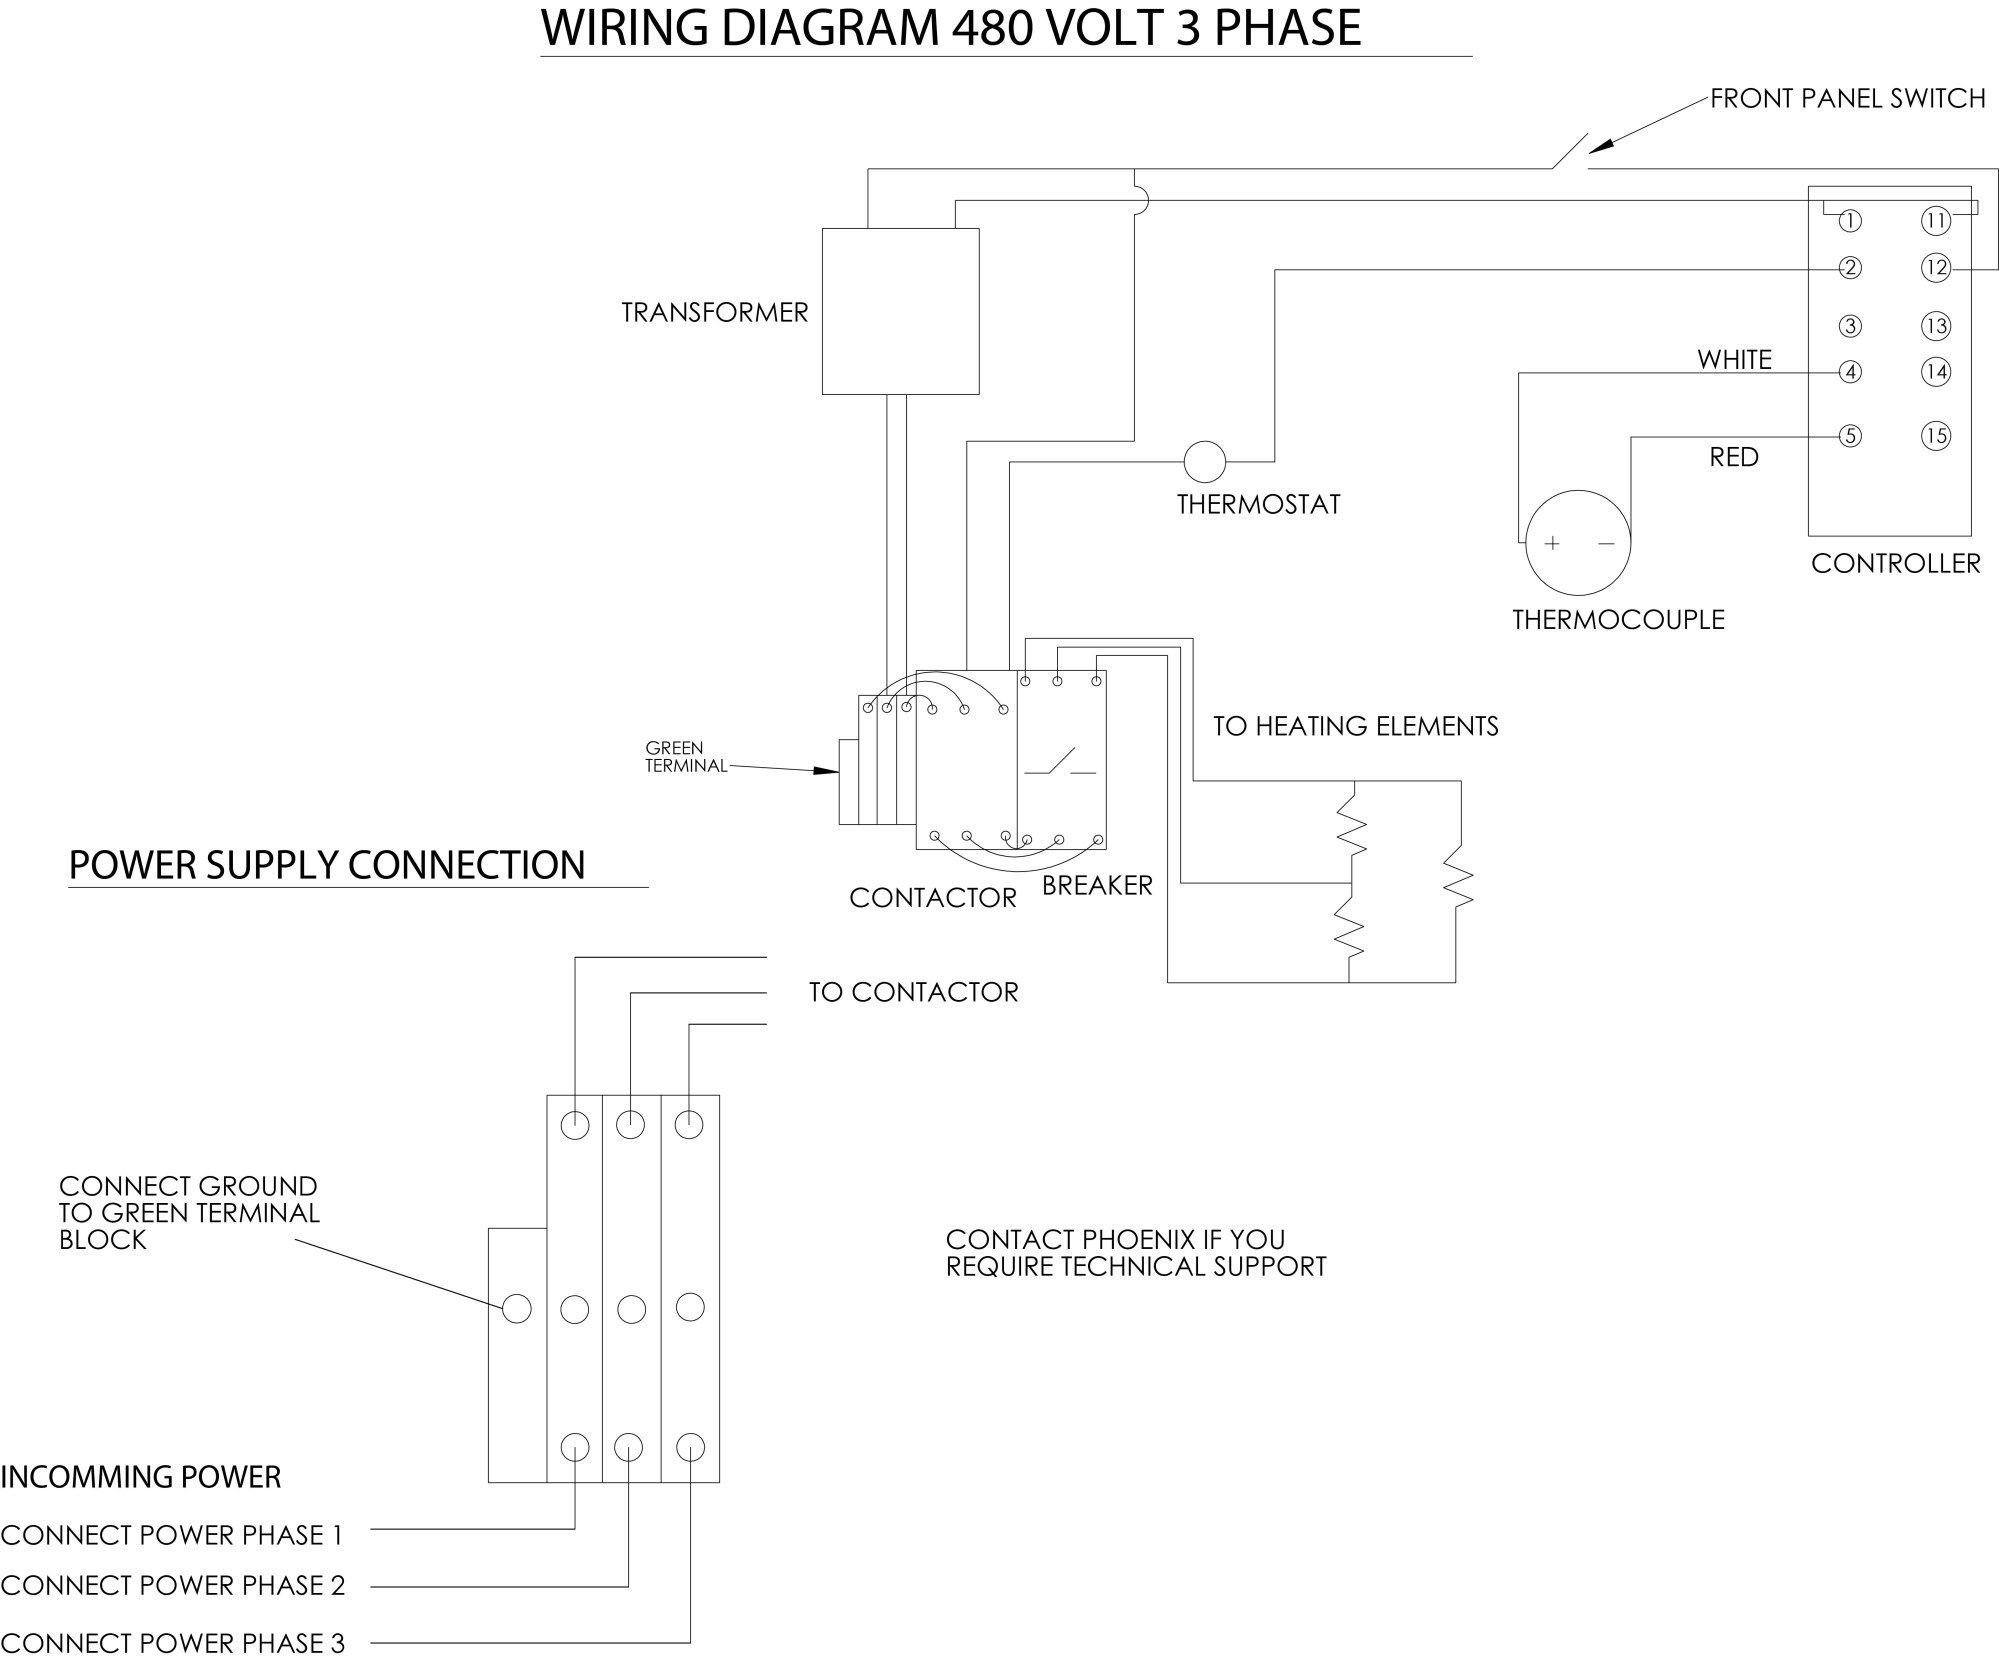 hight resolution of single phase 480v to 120v transformer wiring diagram 3 480v 3 phase motor starter wiring diagram